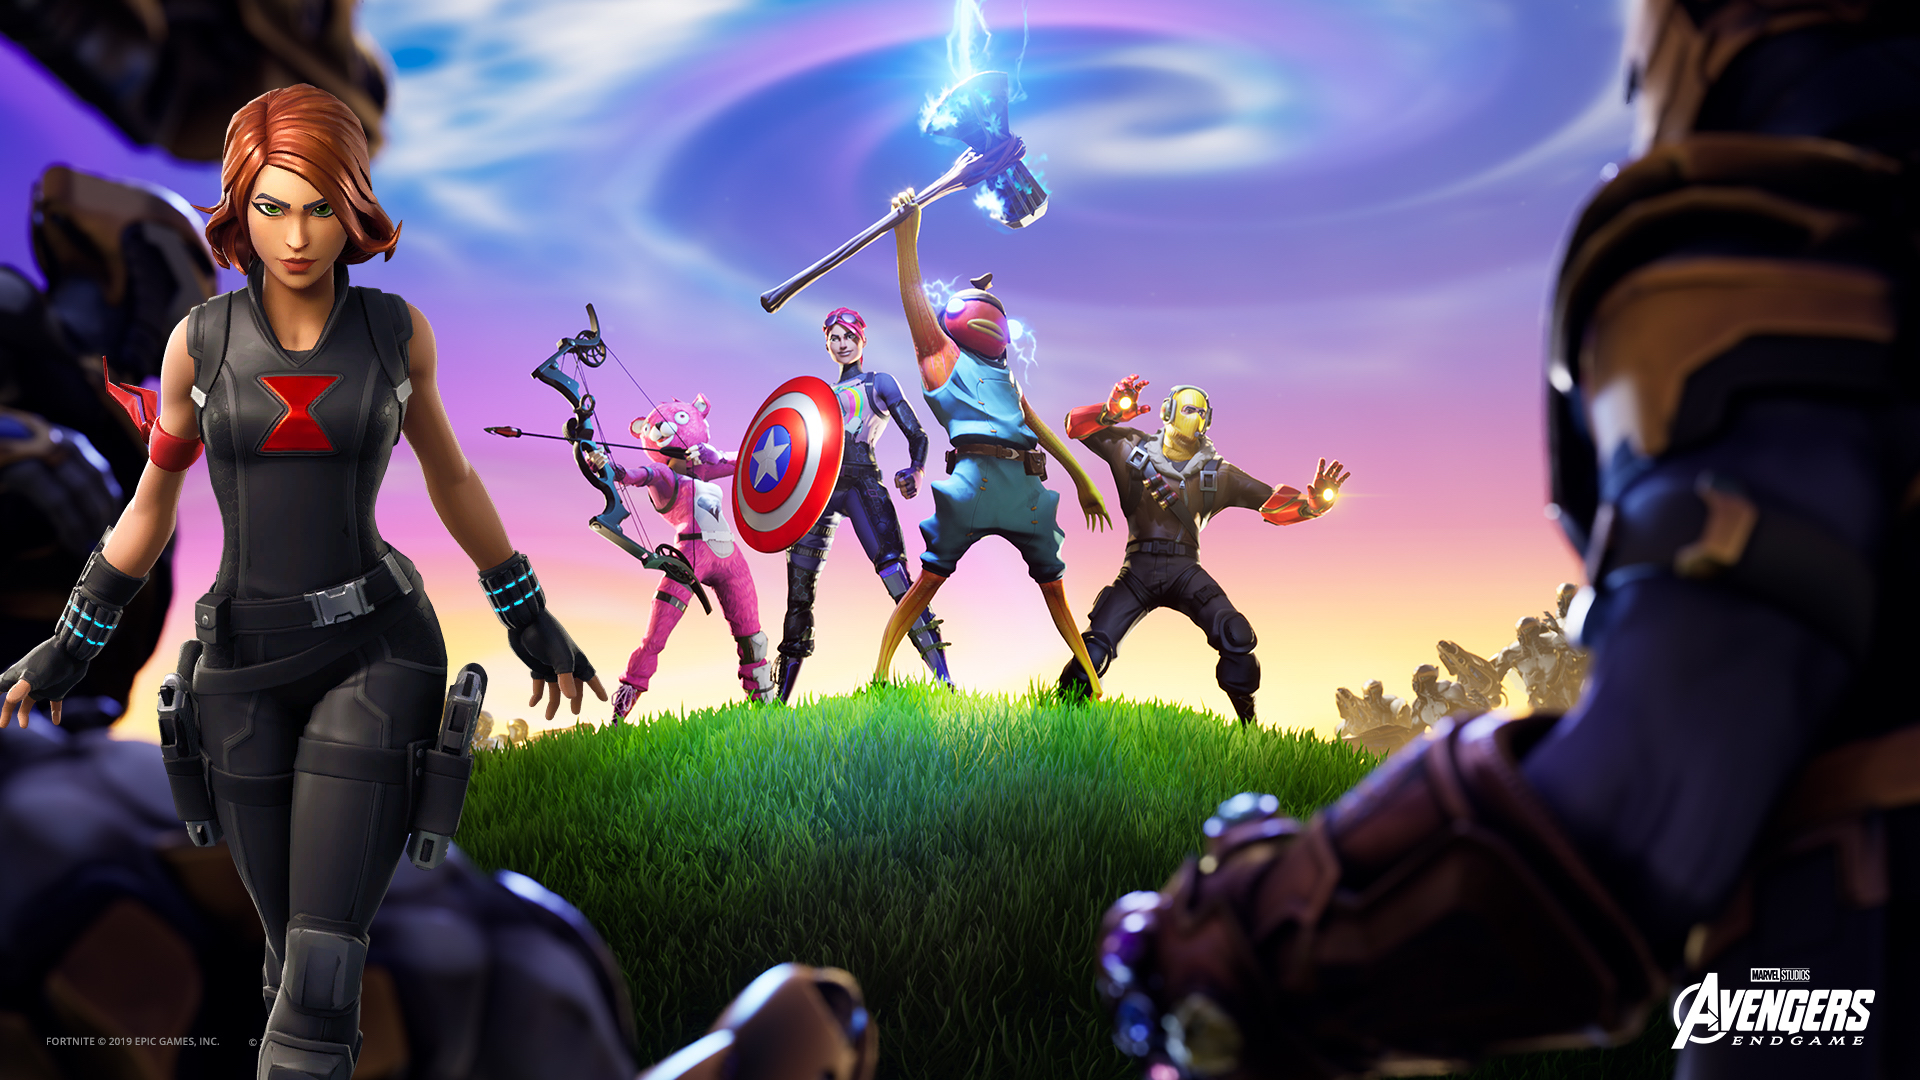 Fortnite' Black Widow Skin, Emote May Lead to Even More 'Endgame